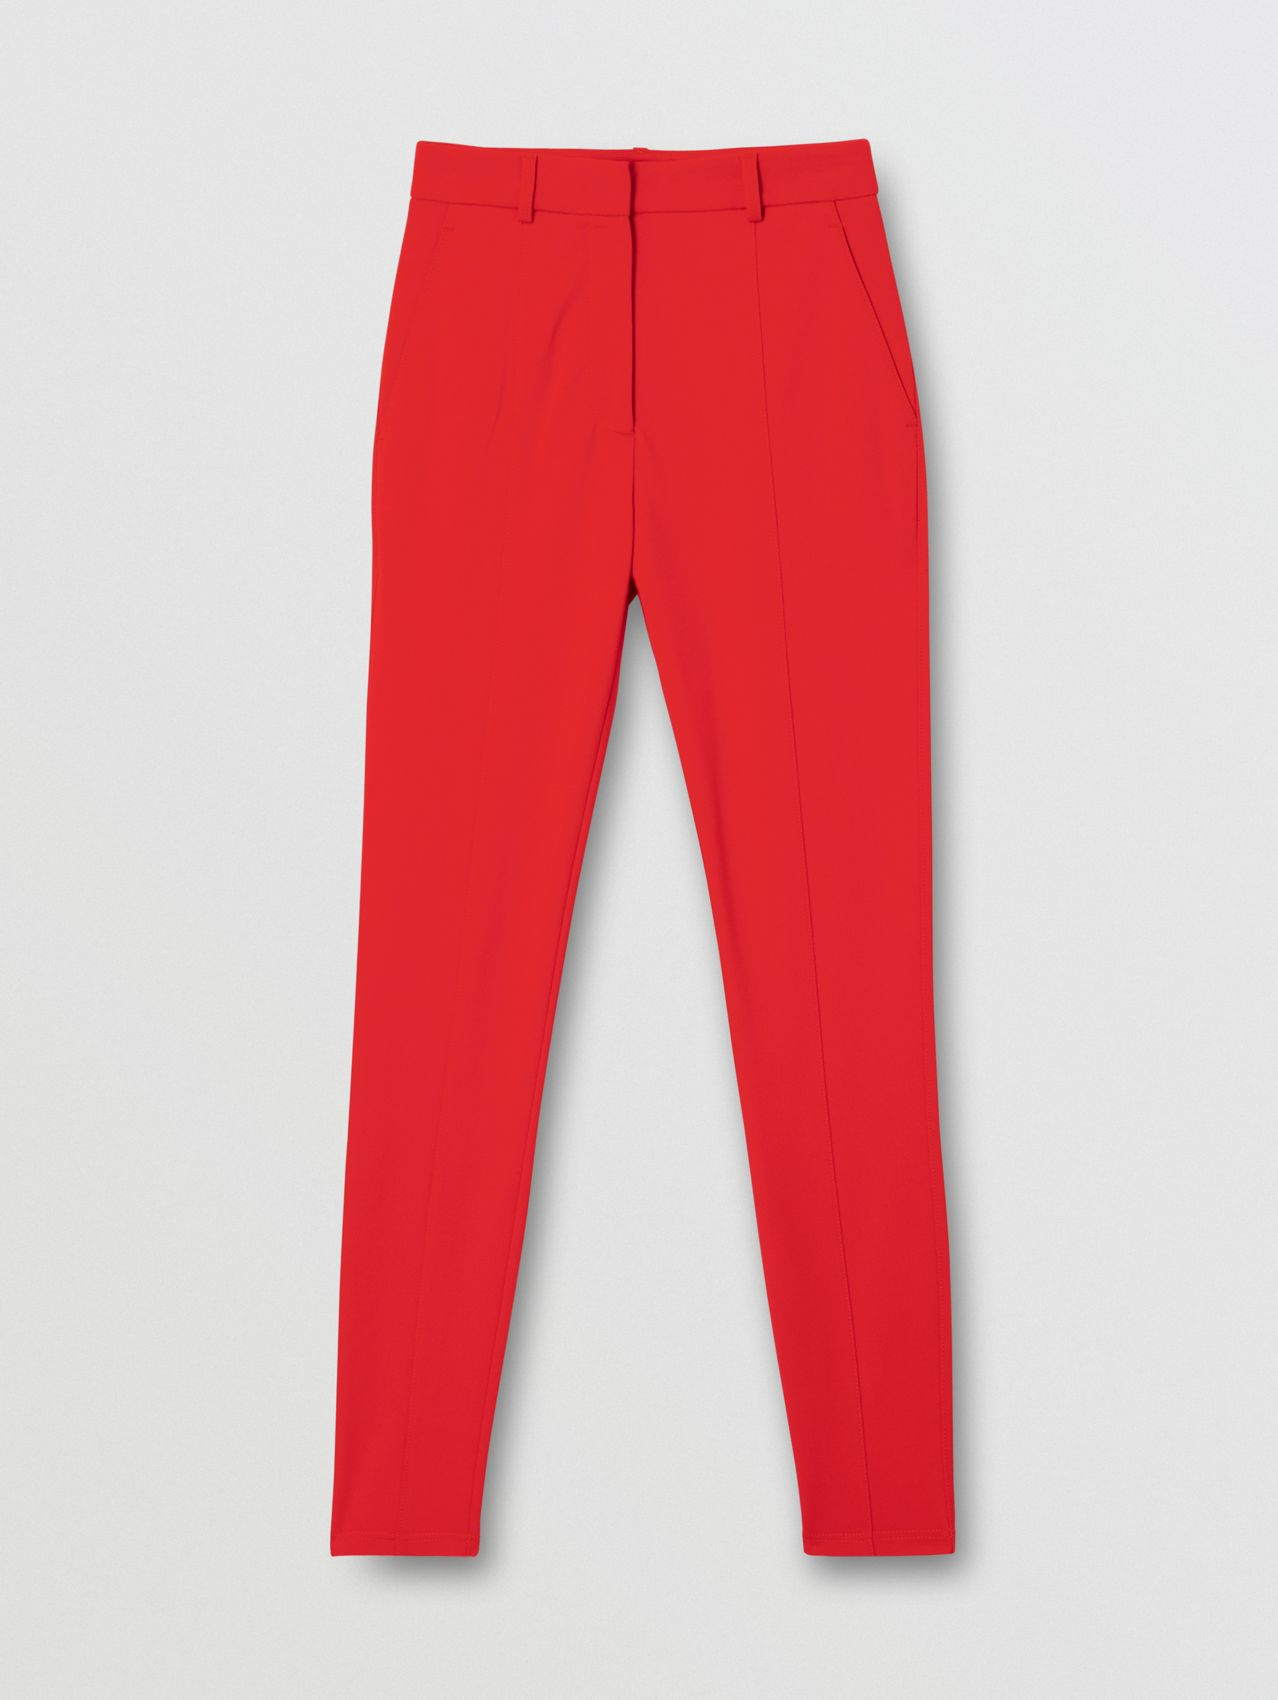 Stretch Jersey Jodhpurs in Bright Red